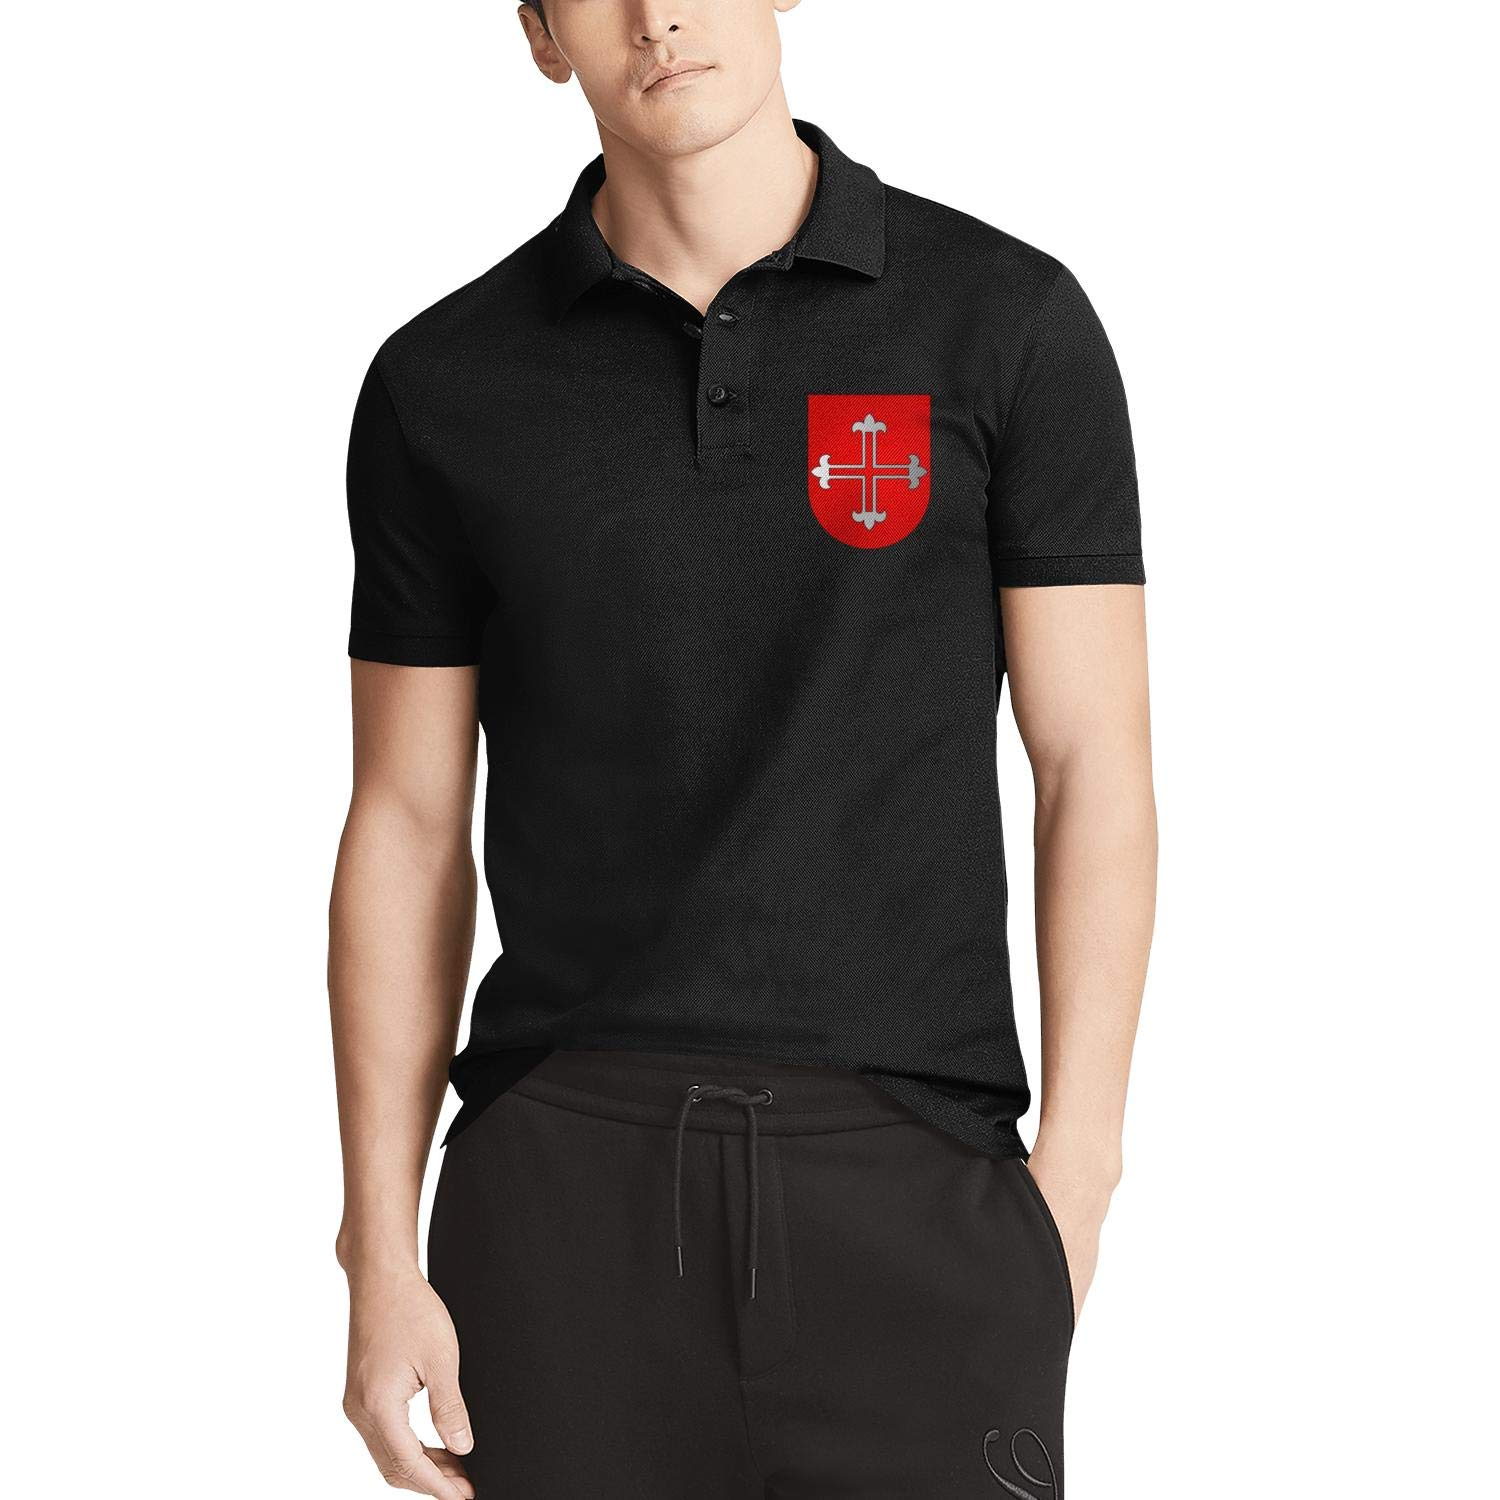 ZWZHI All Things Knights Templar Printed Mens Polo Shirt Party Cotton Shirt Top